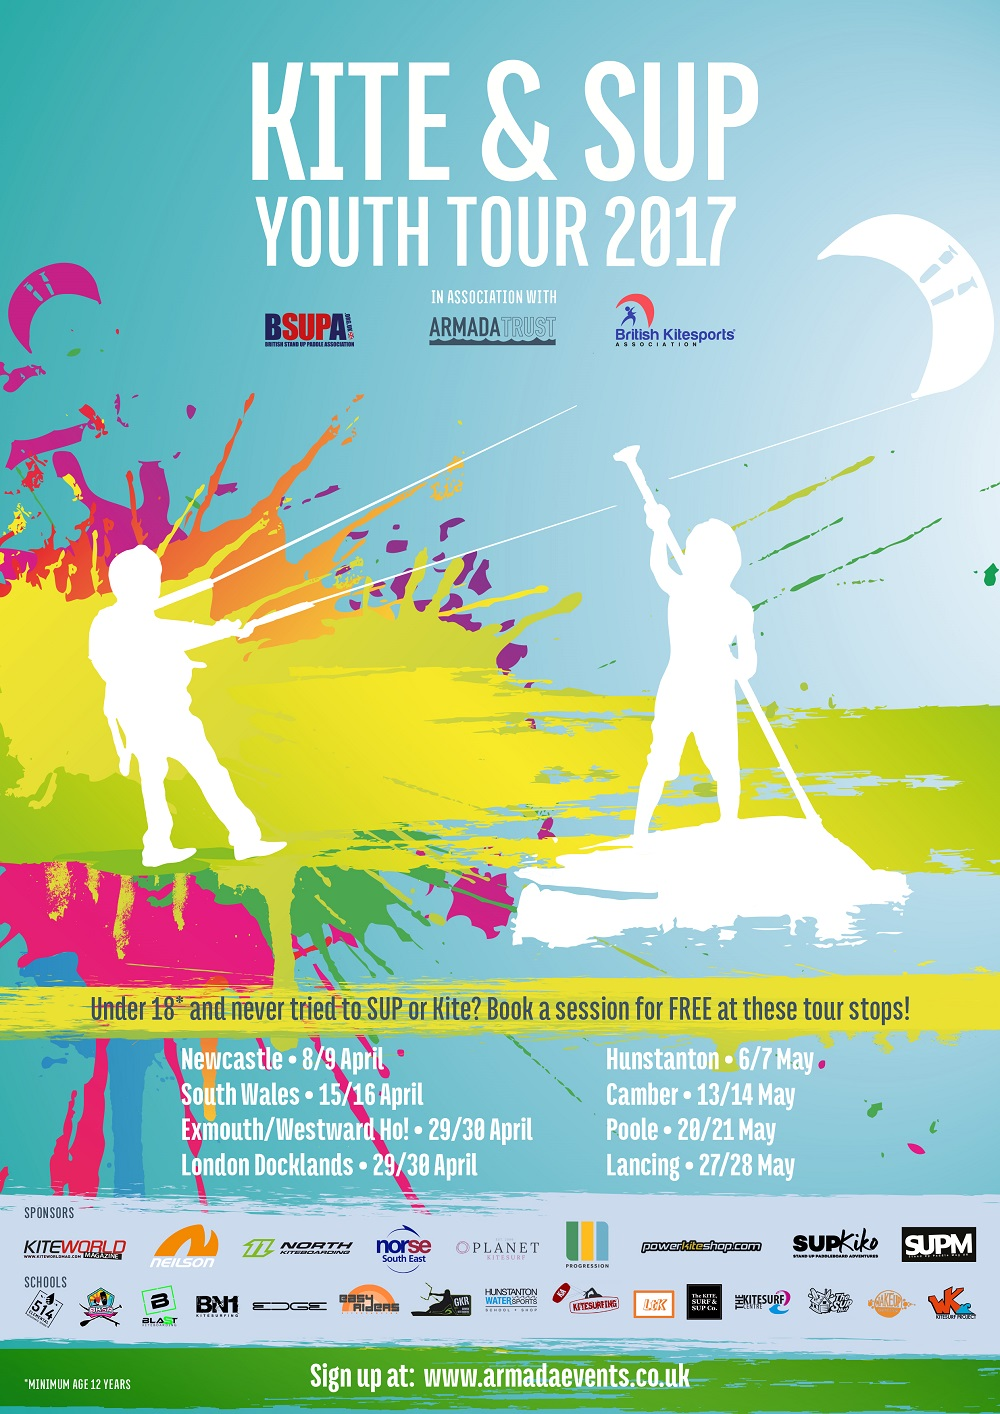 Kite & SUP Youth Tour#7